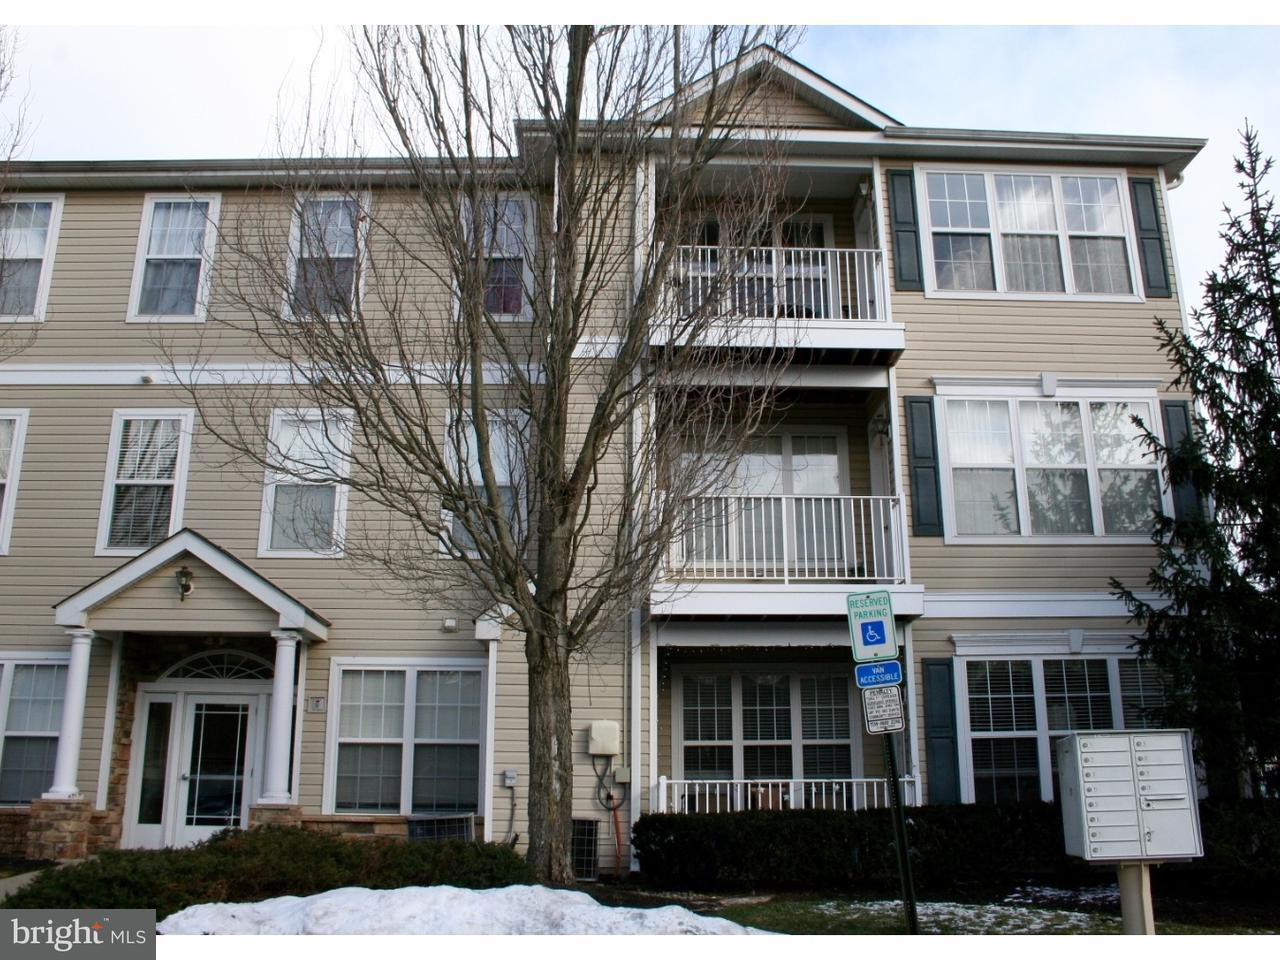 Townhouse for Sale at 91 KYLE WAY Ewing, New Jersey 08628 United StatesMunicipality: Ewing Township